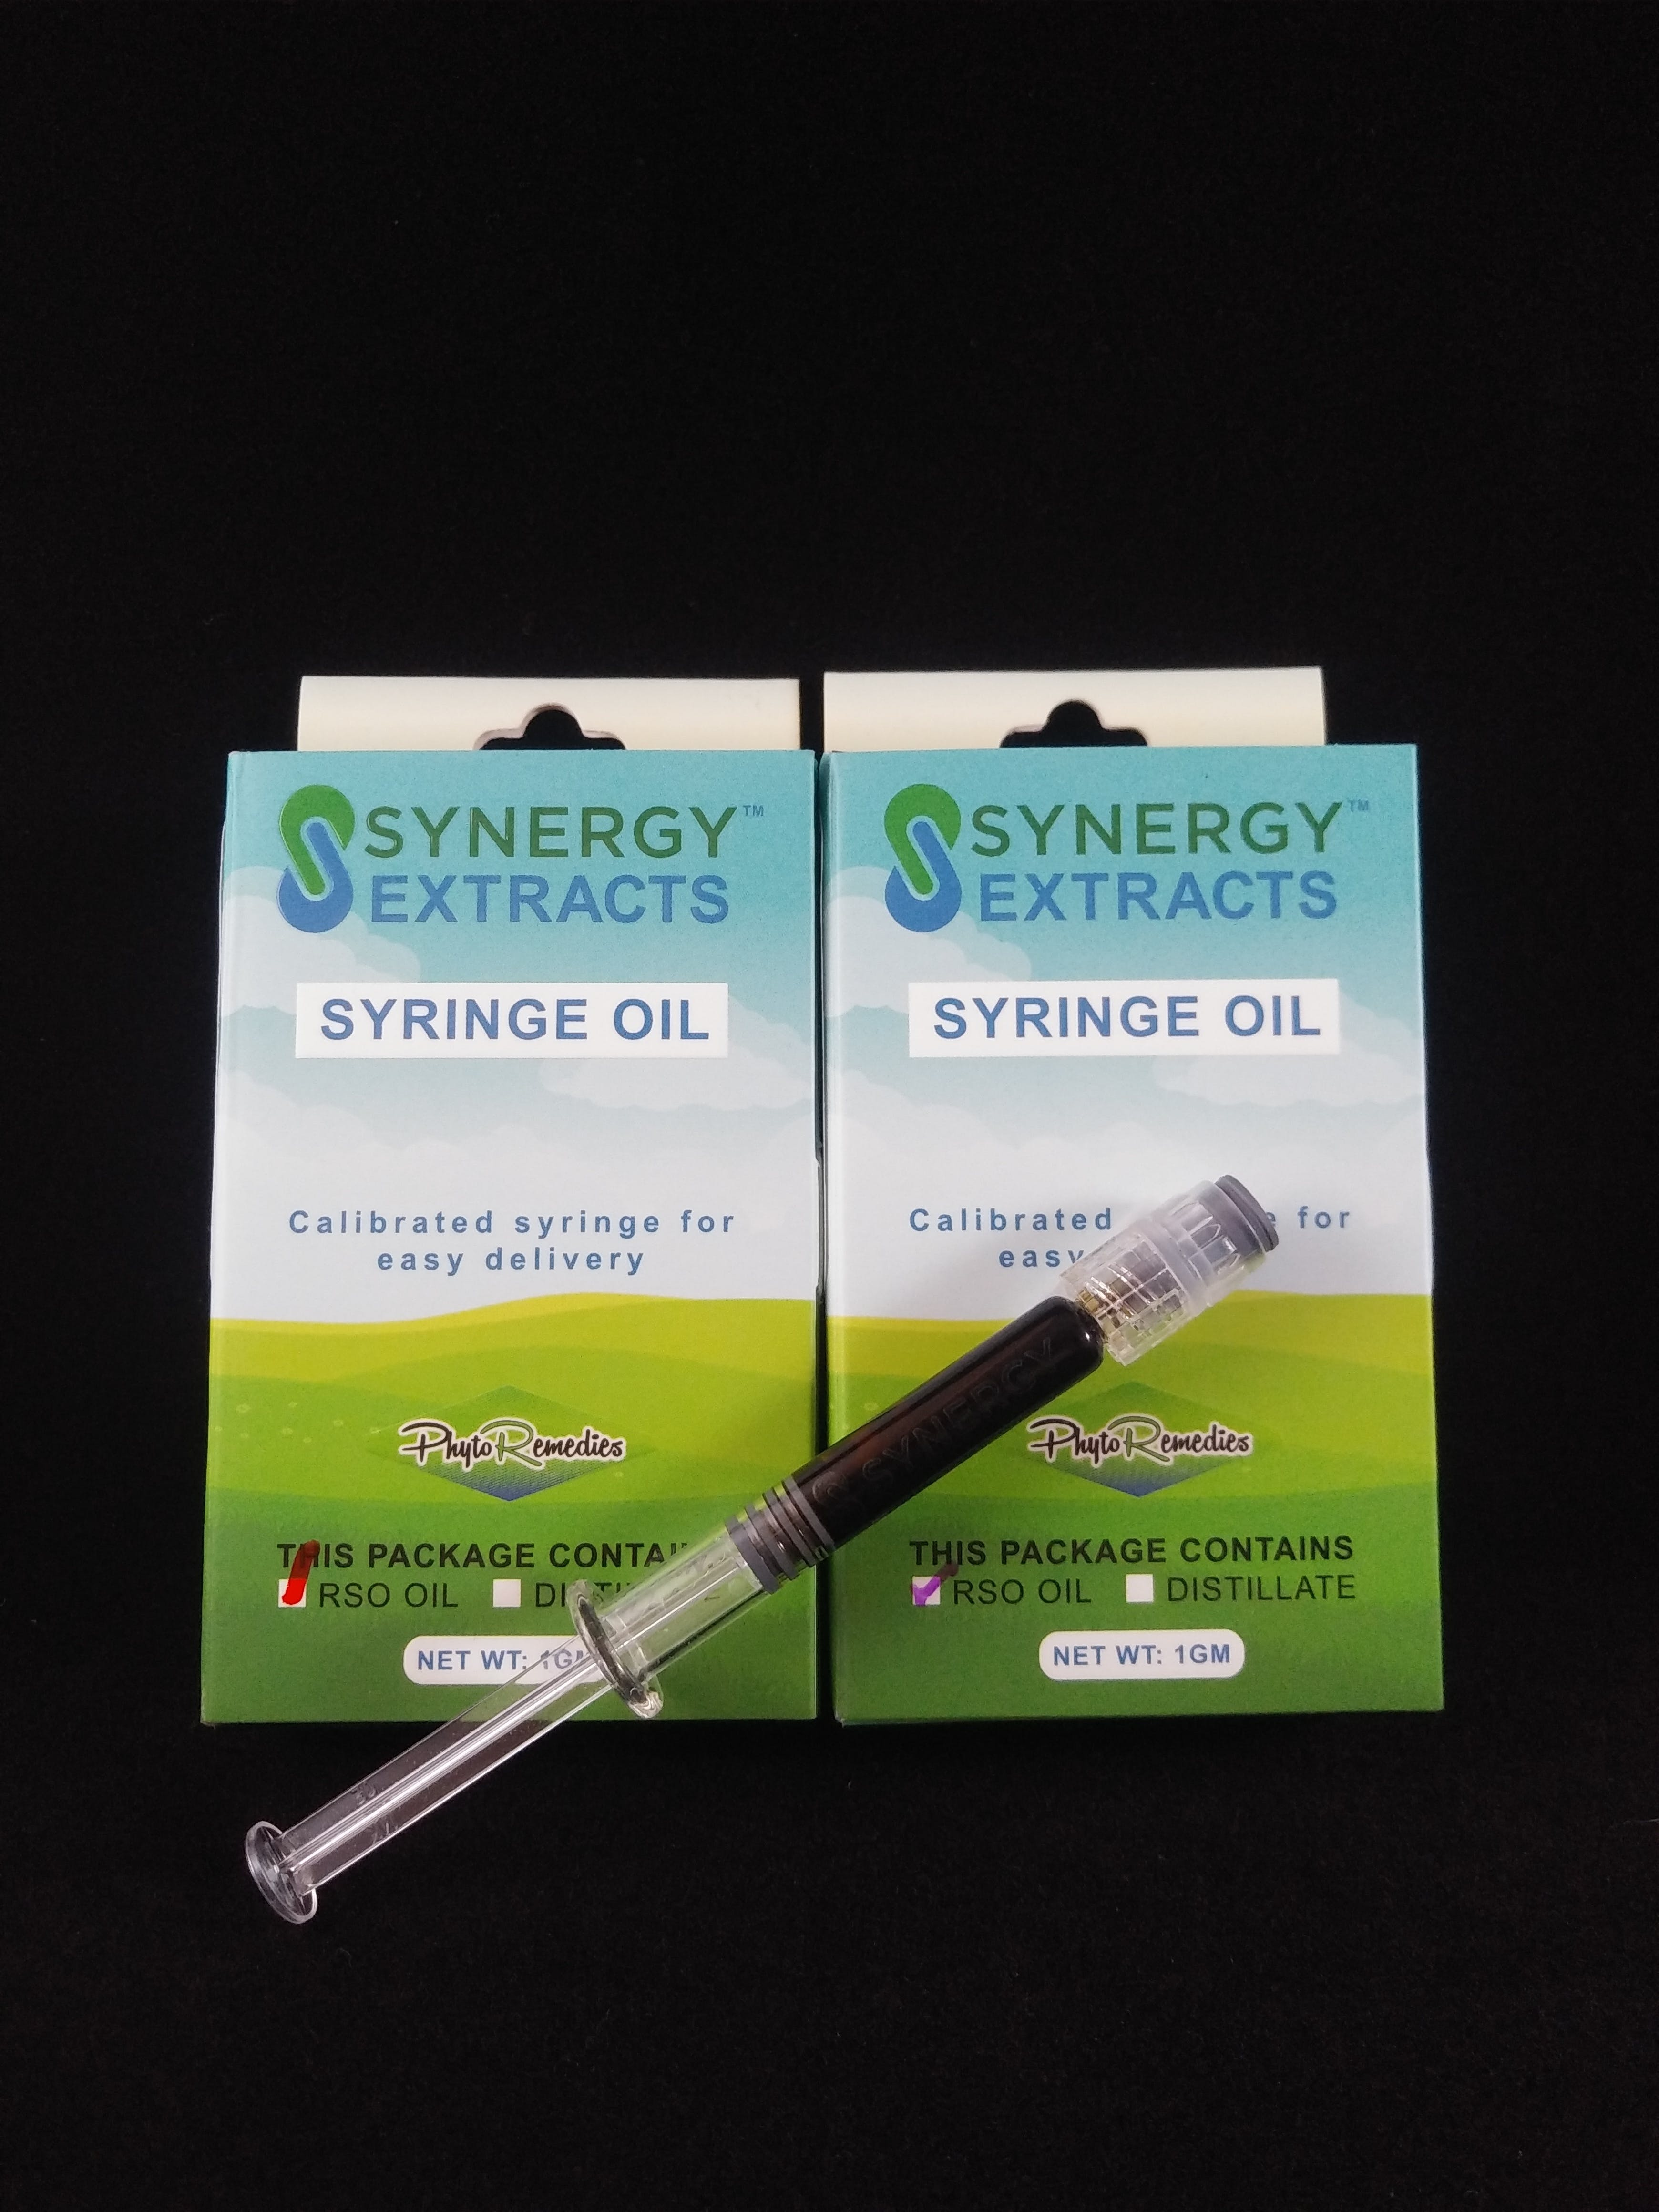 concentrate-synergy-extracts-fso-689mg-thc